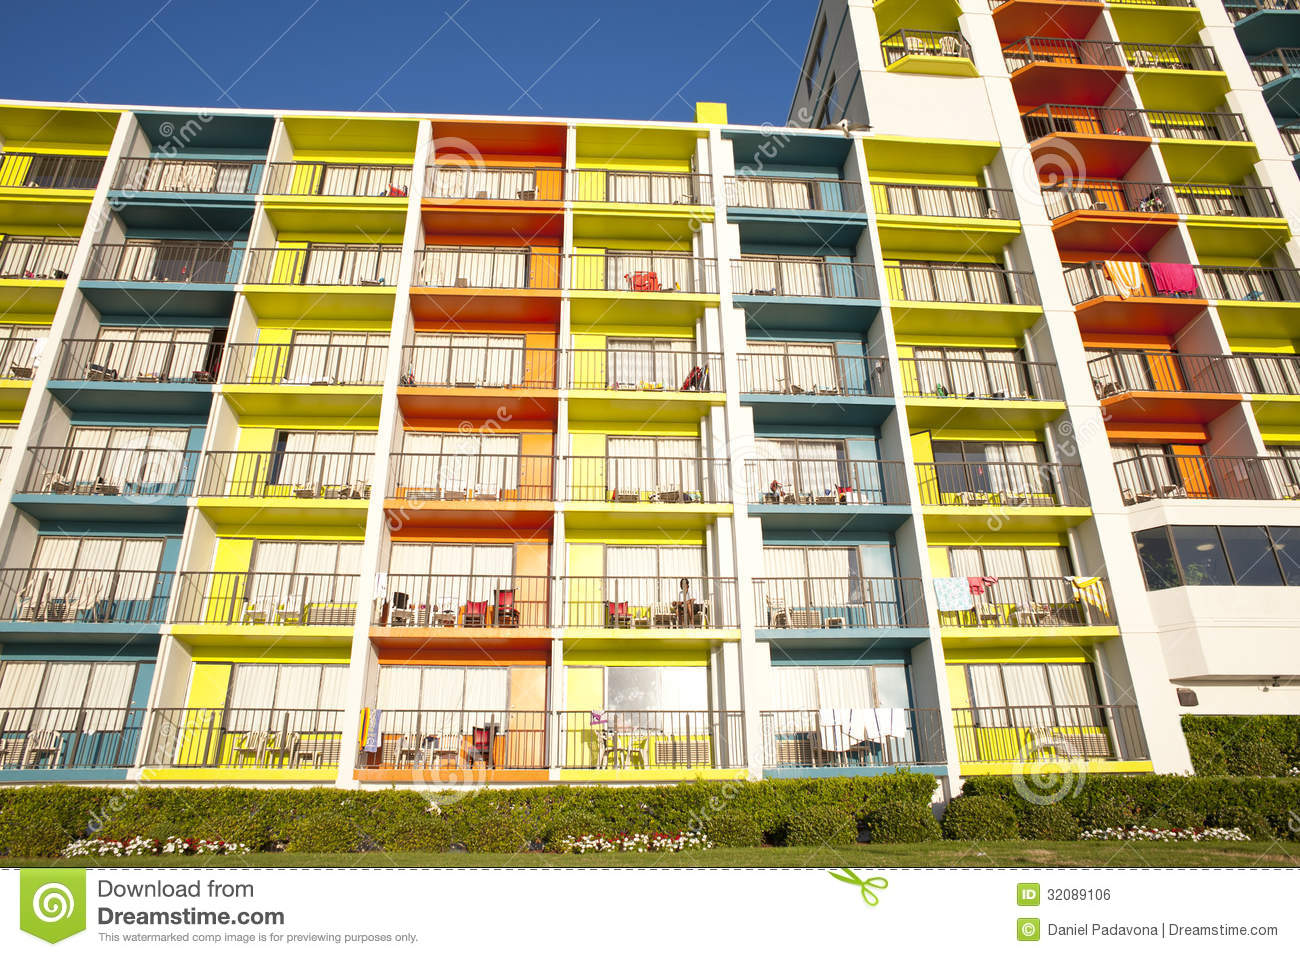 olorful rchitecture - esort Hotel oyalty Free Stock Image ... - ^